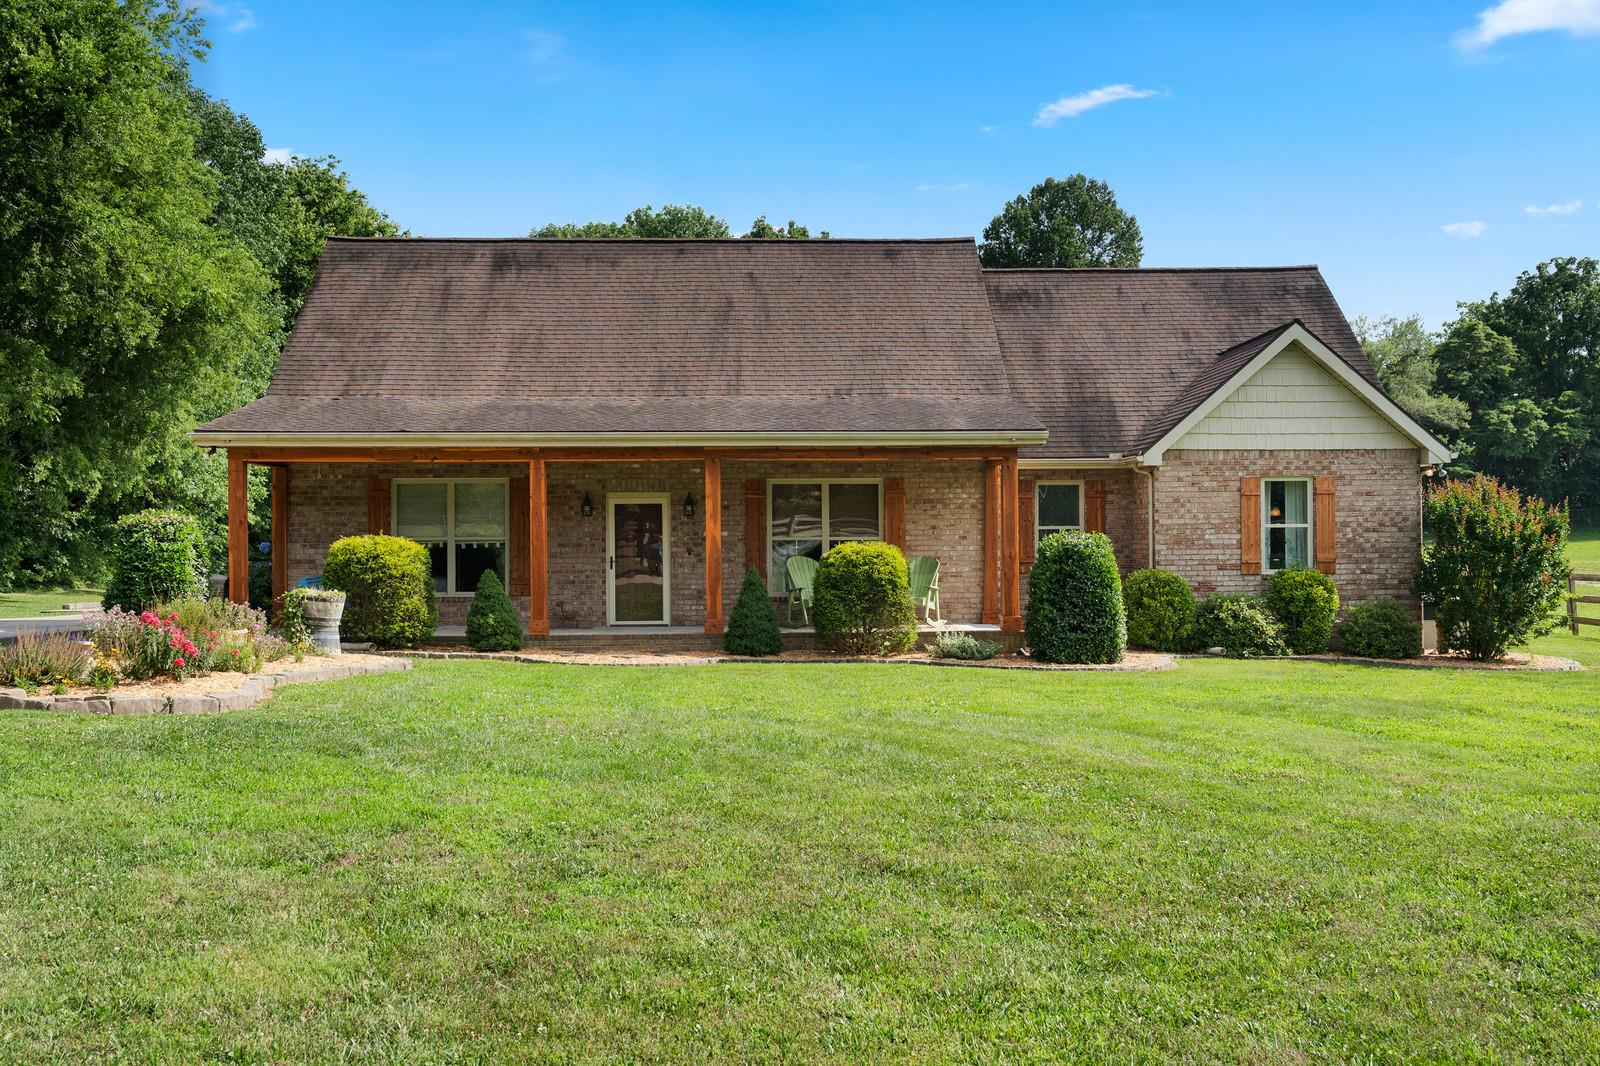 3055 Kinneys Rd, Cedar Hill, TN 37032 - Cedar Hill, TN real estate listing